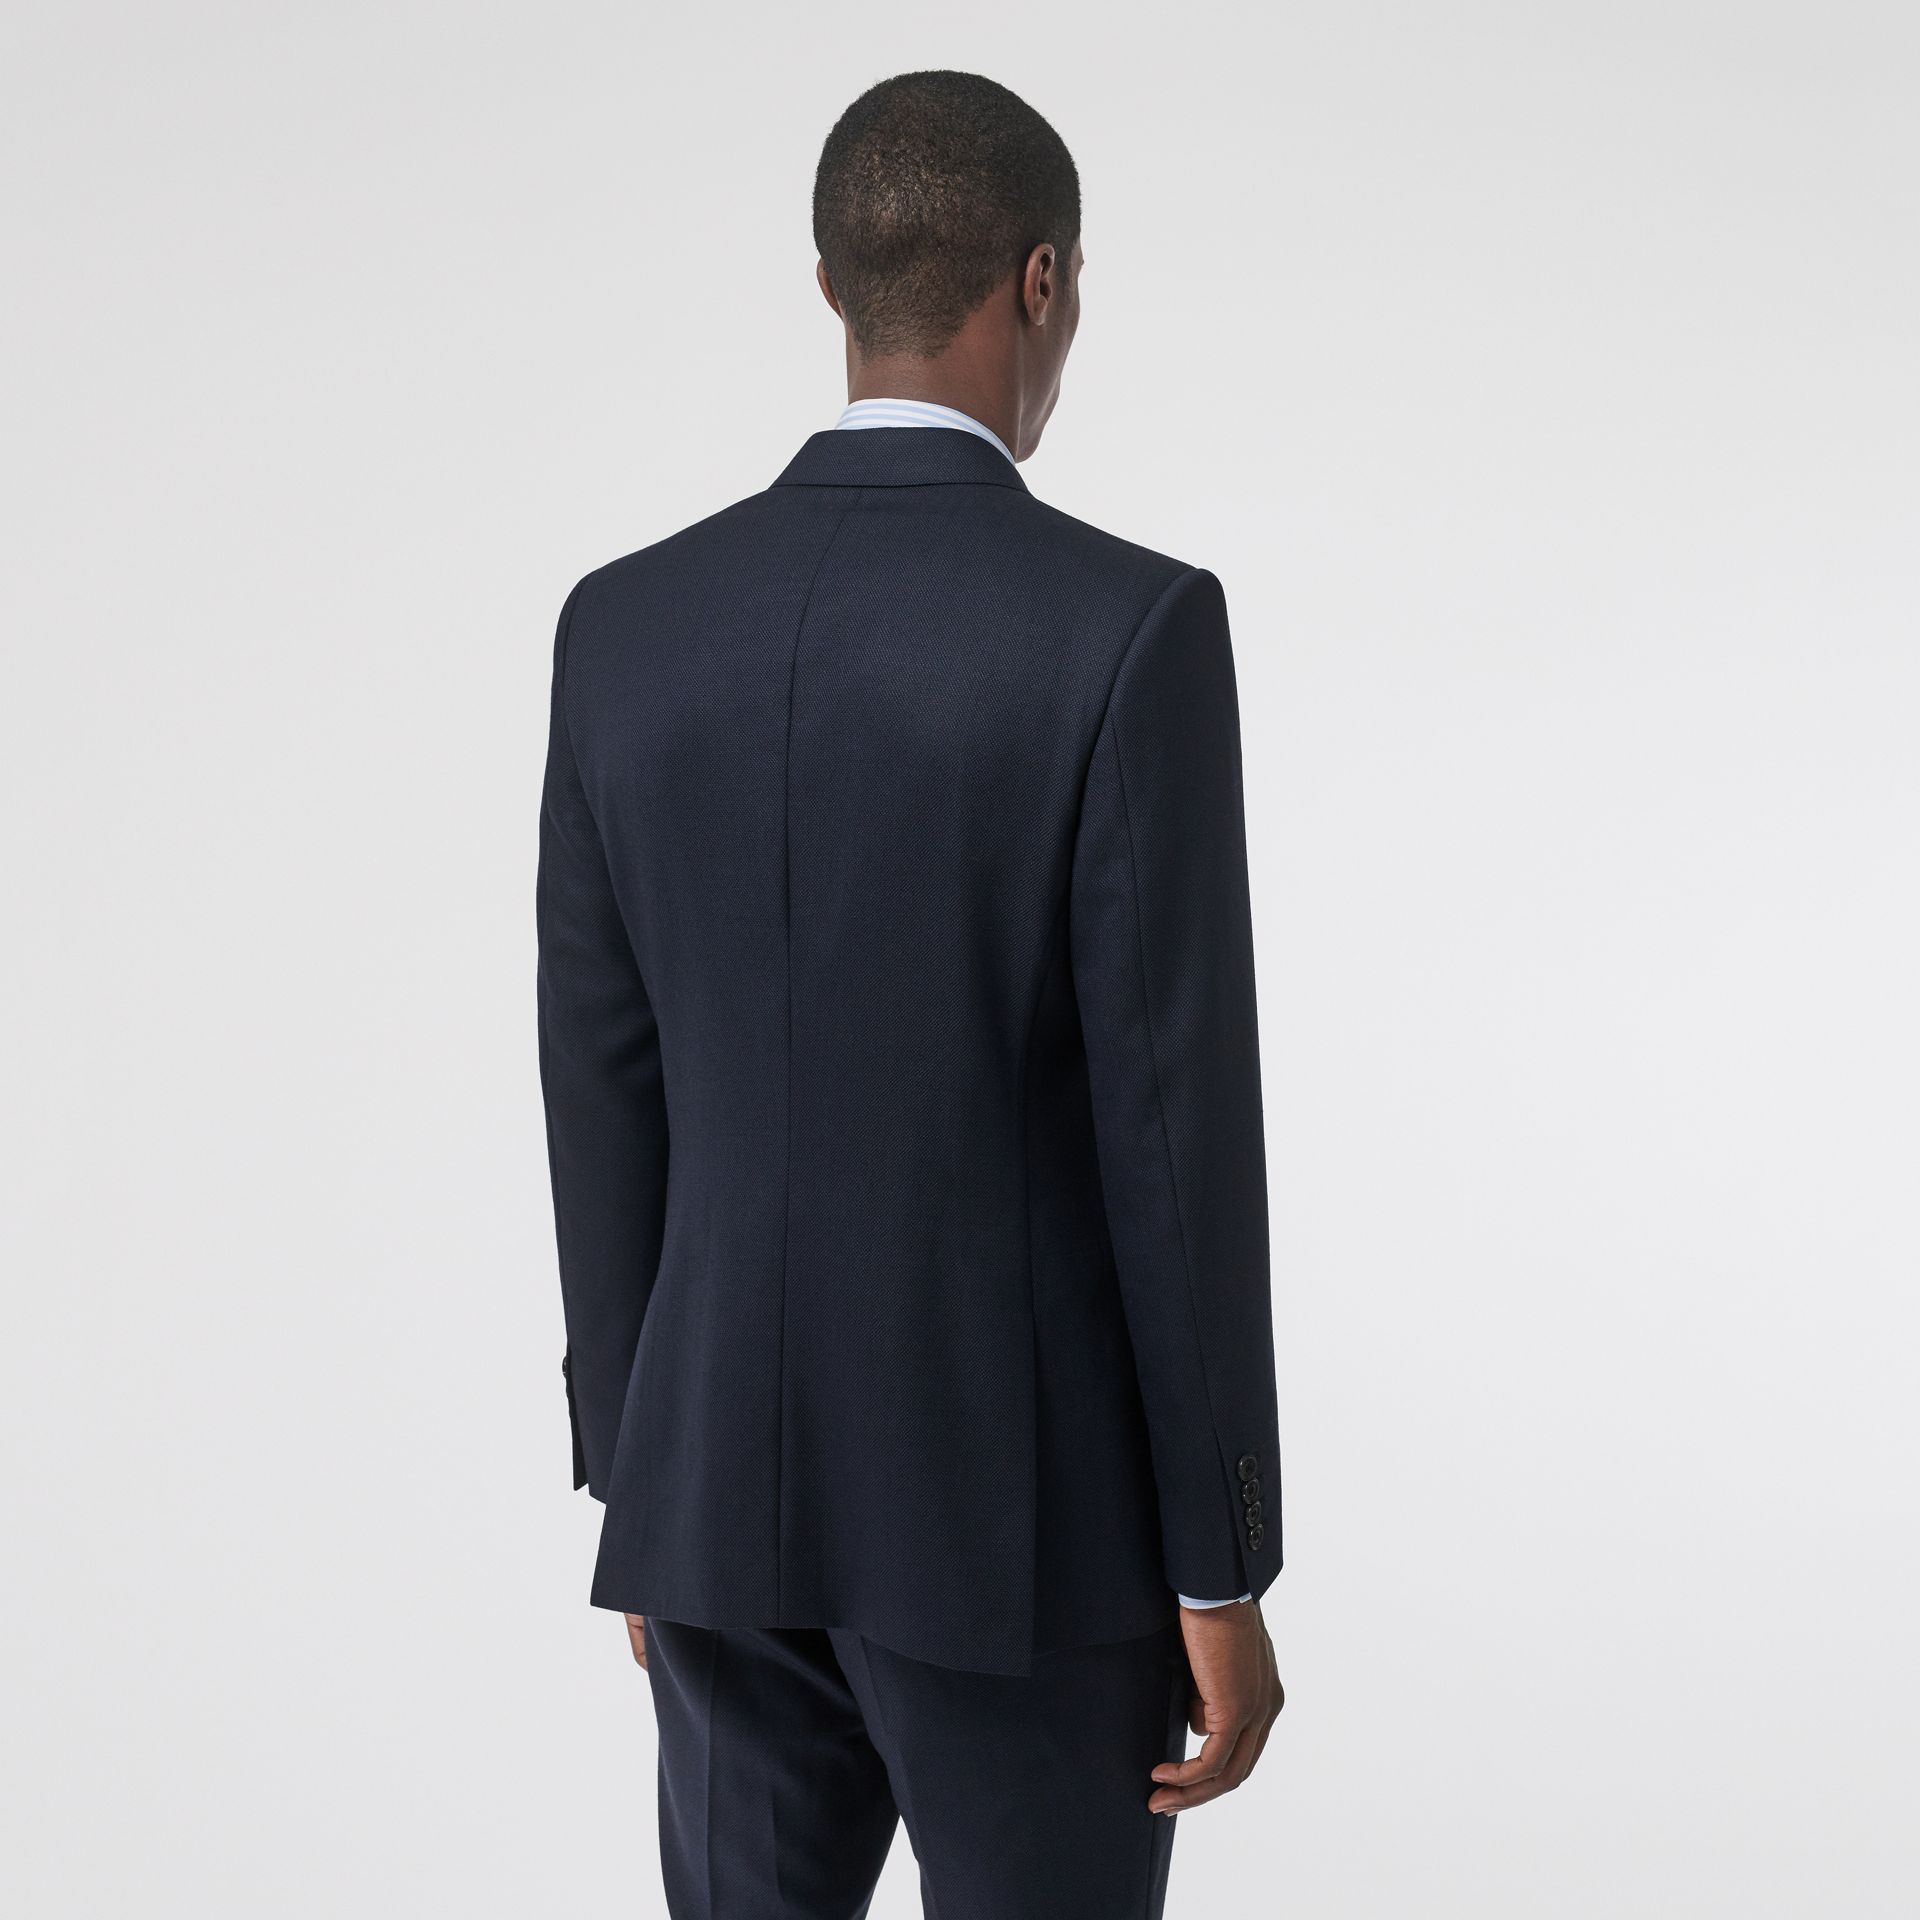 English Fit Birdseye Wool Cashmere Suit in Navy Blue | Burberry - gallery image 2